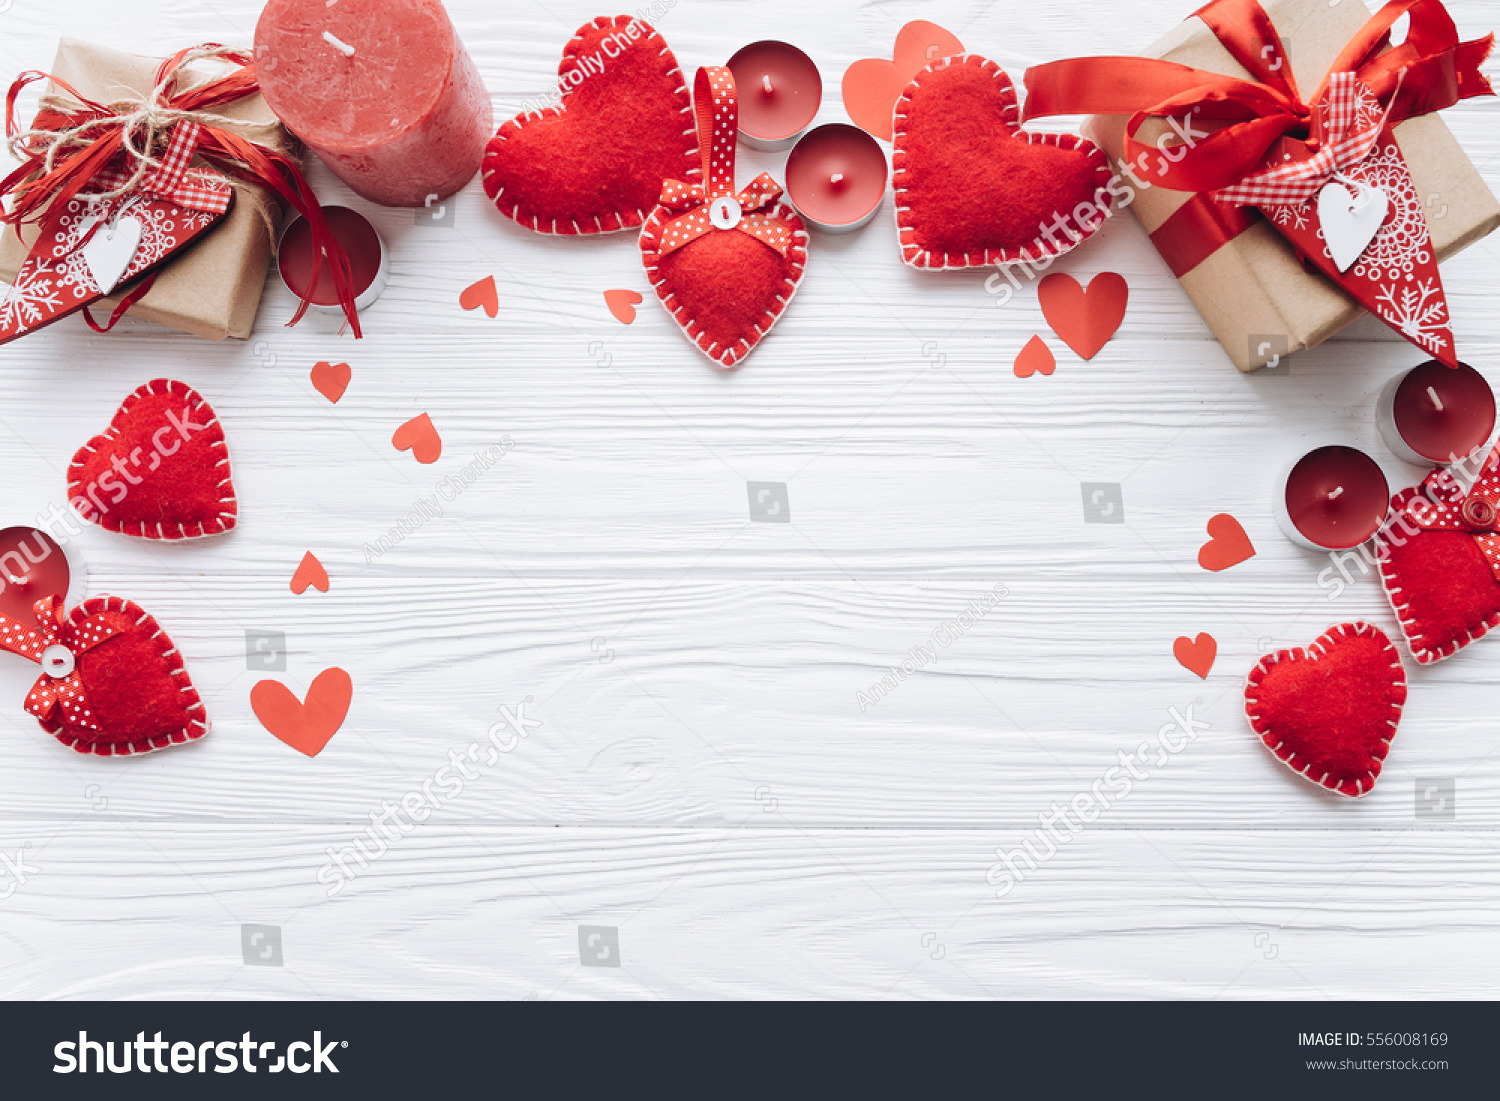 Wooden white background with red hearts, gifts and candles. The concept of Valentine Day.